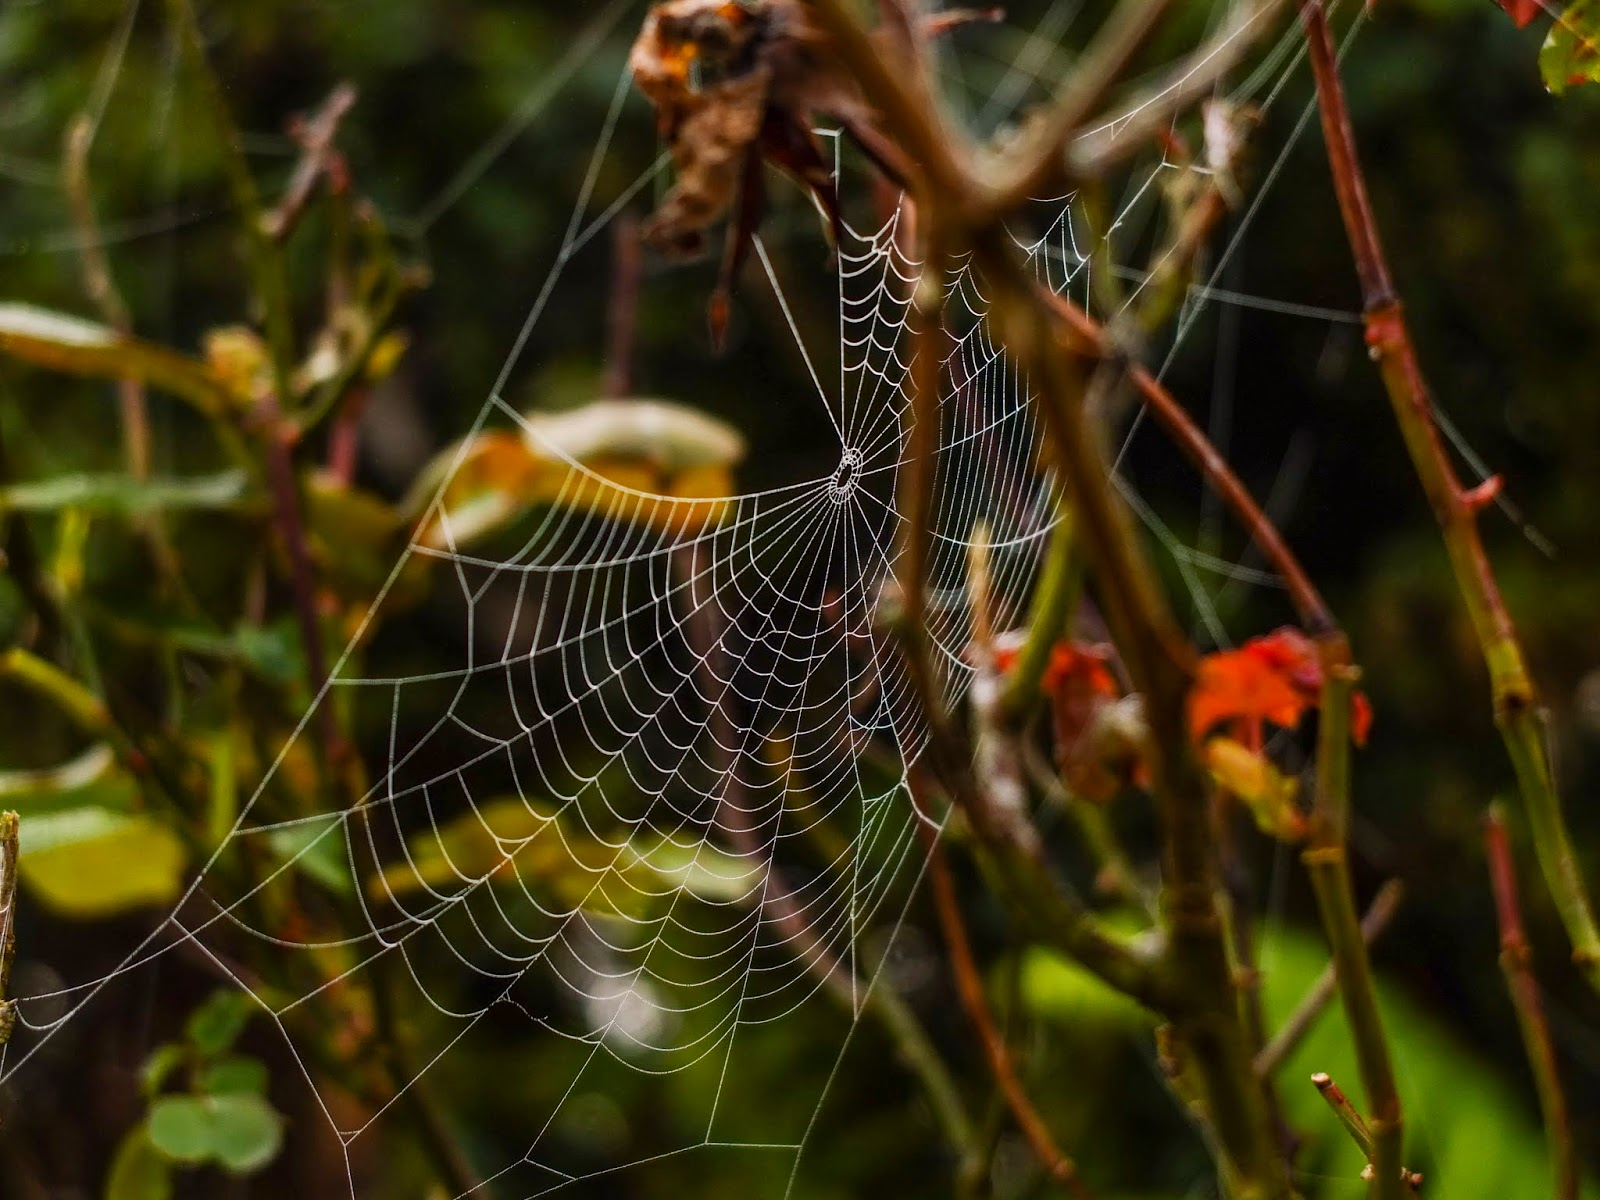 A close up of a spider web in rose branches.